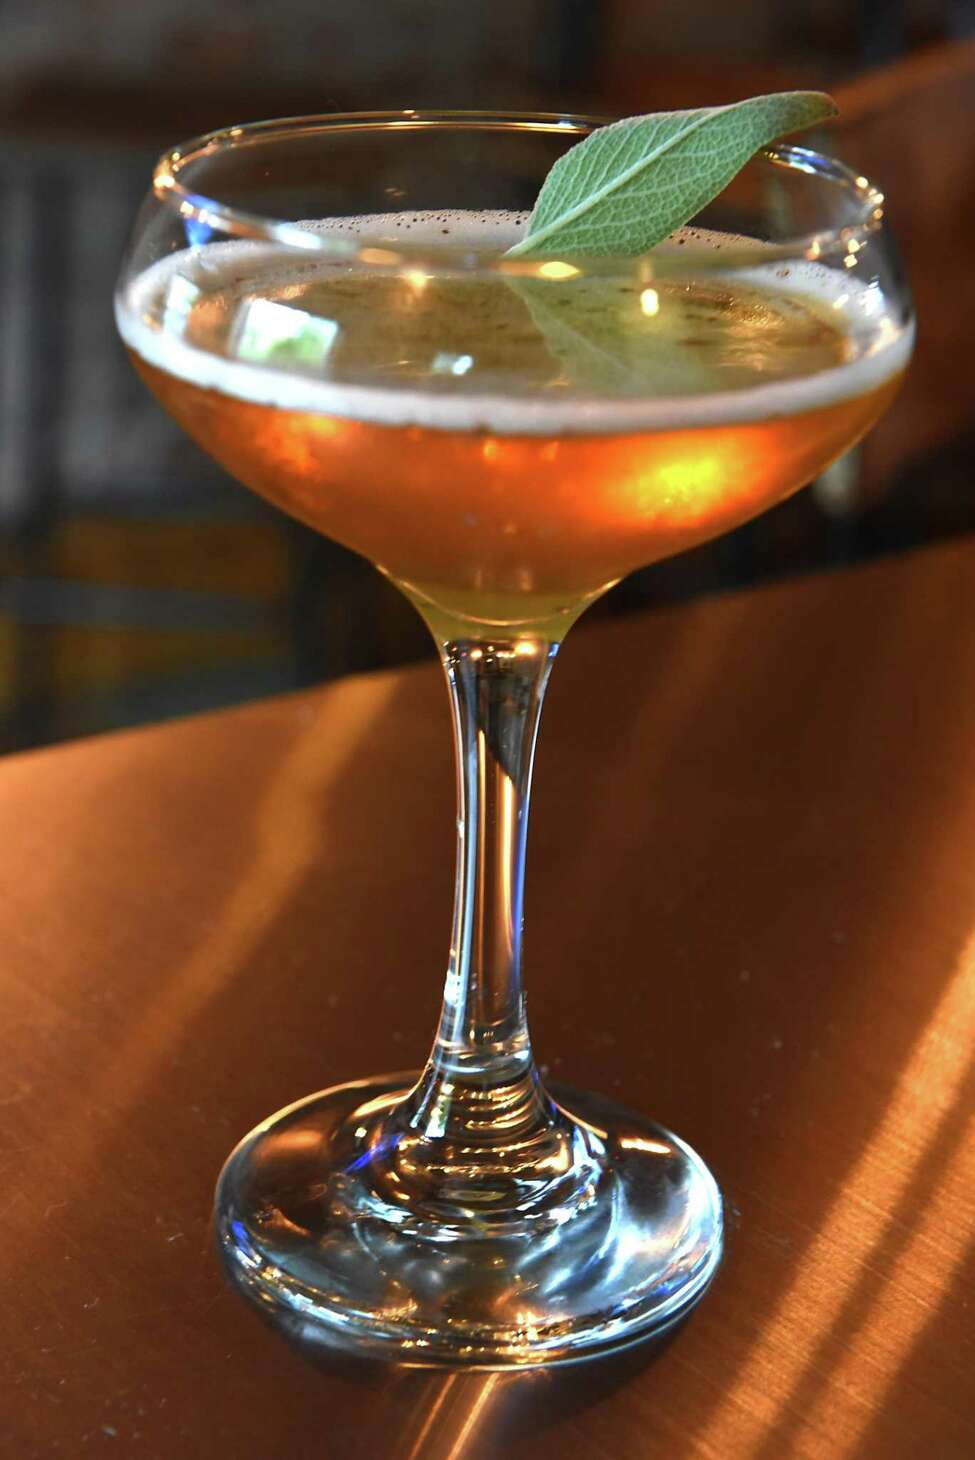 Sweet and sage cocktail at Albany Distilling Co. at 75 Livingston Ave. on Tuesday, May 22, 2018 in Albany, N.Y. (Lori Van Buren/Times Union)